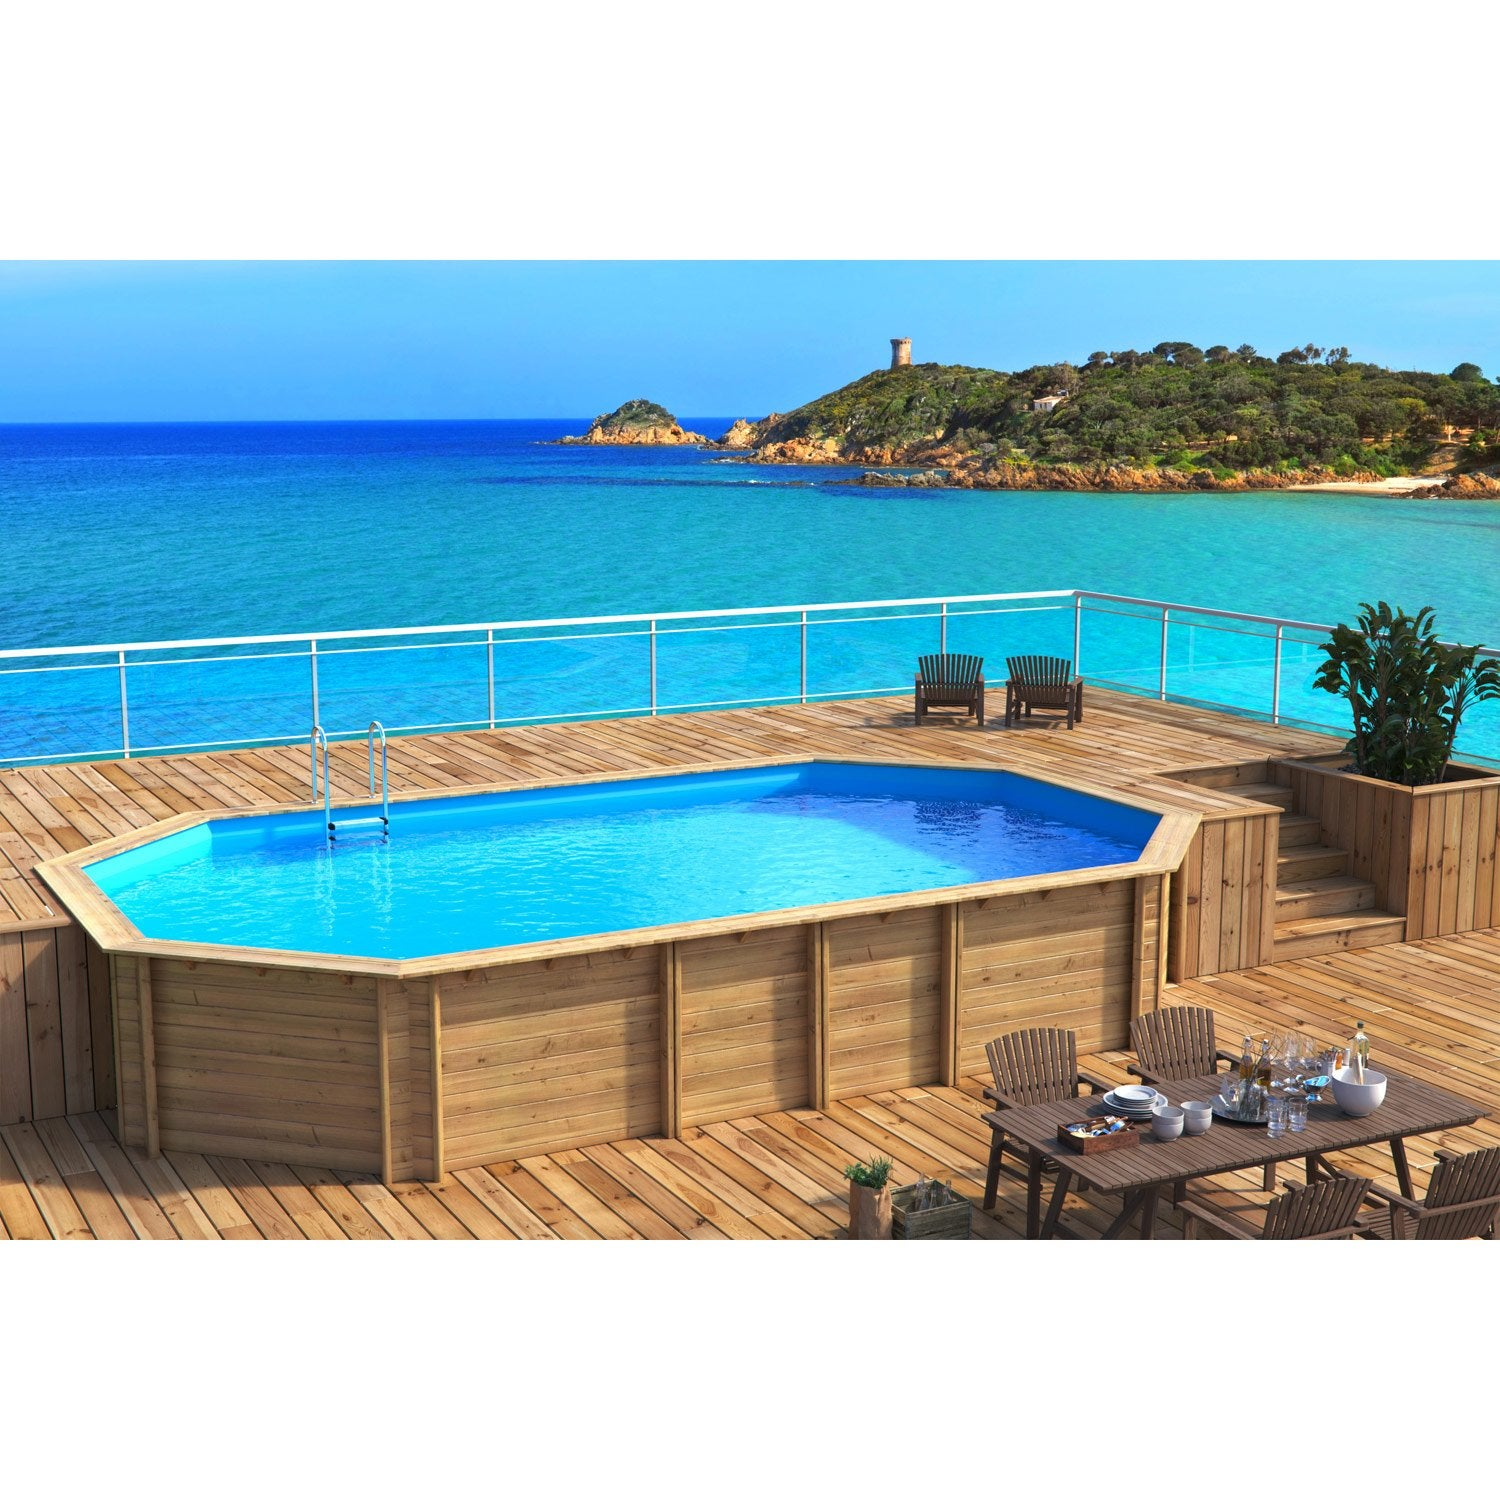 Piscine hors sol bois weva proswell by procopi l x l for Amenagement piscine hors sol terrasse